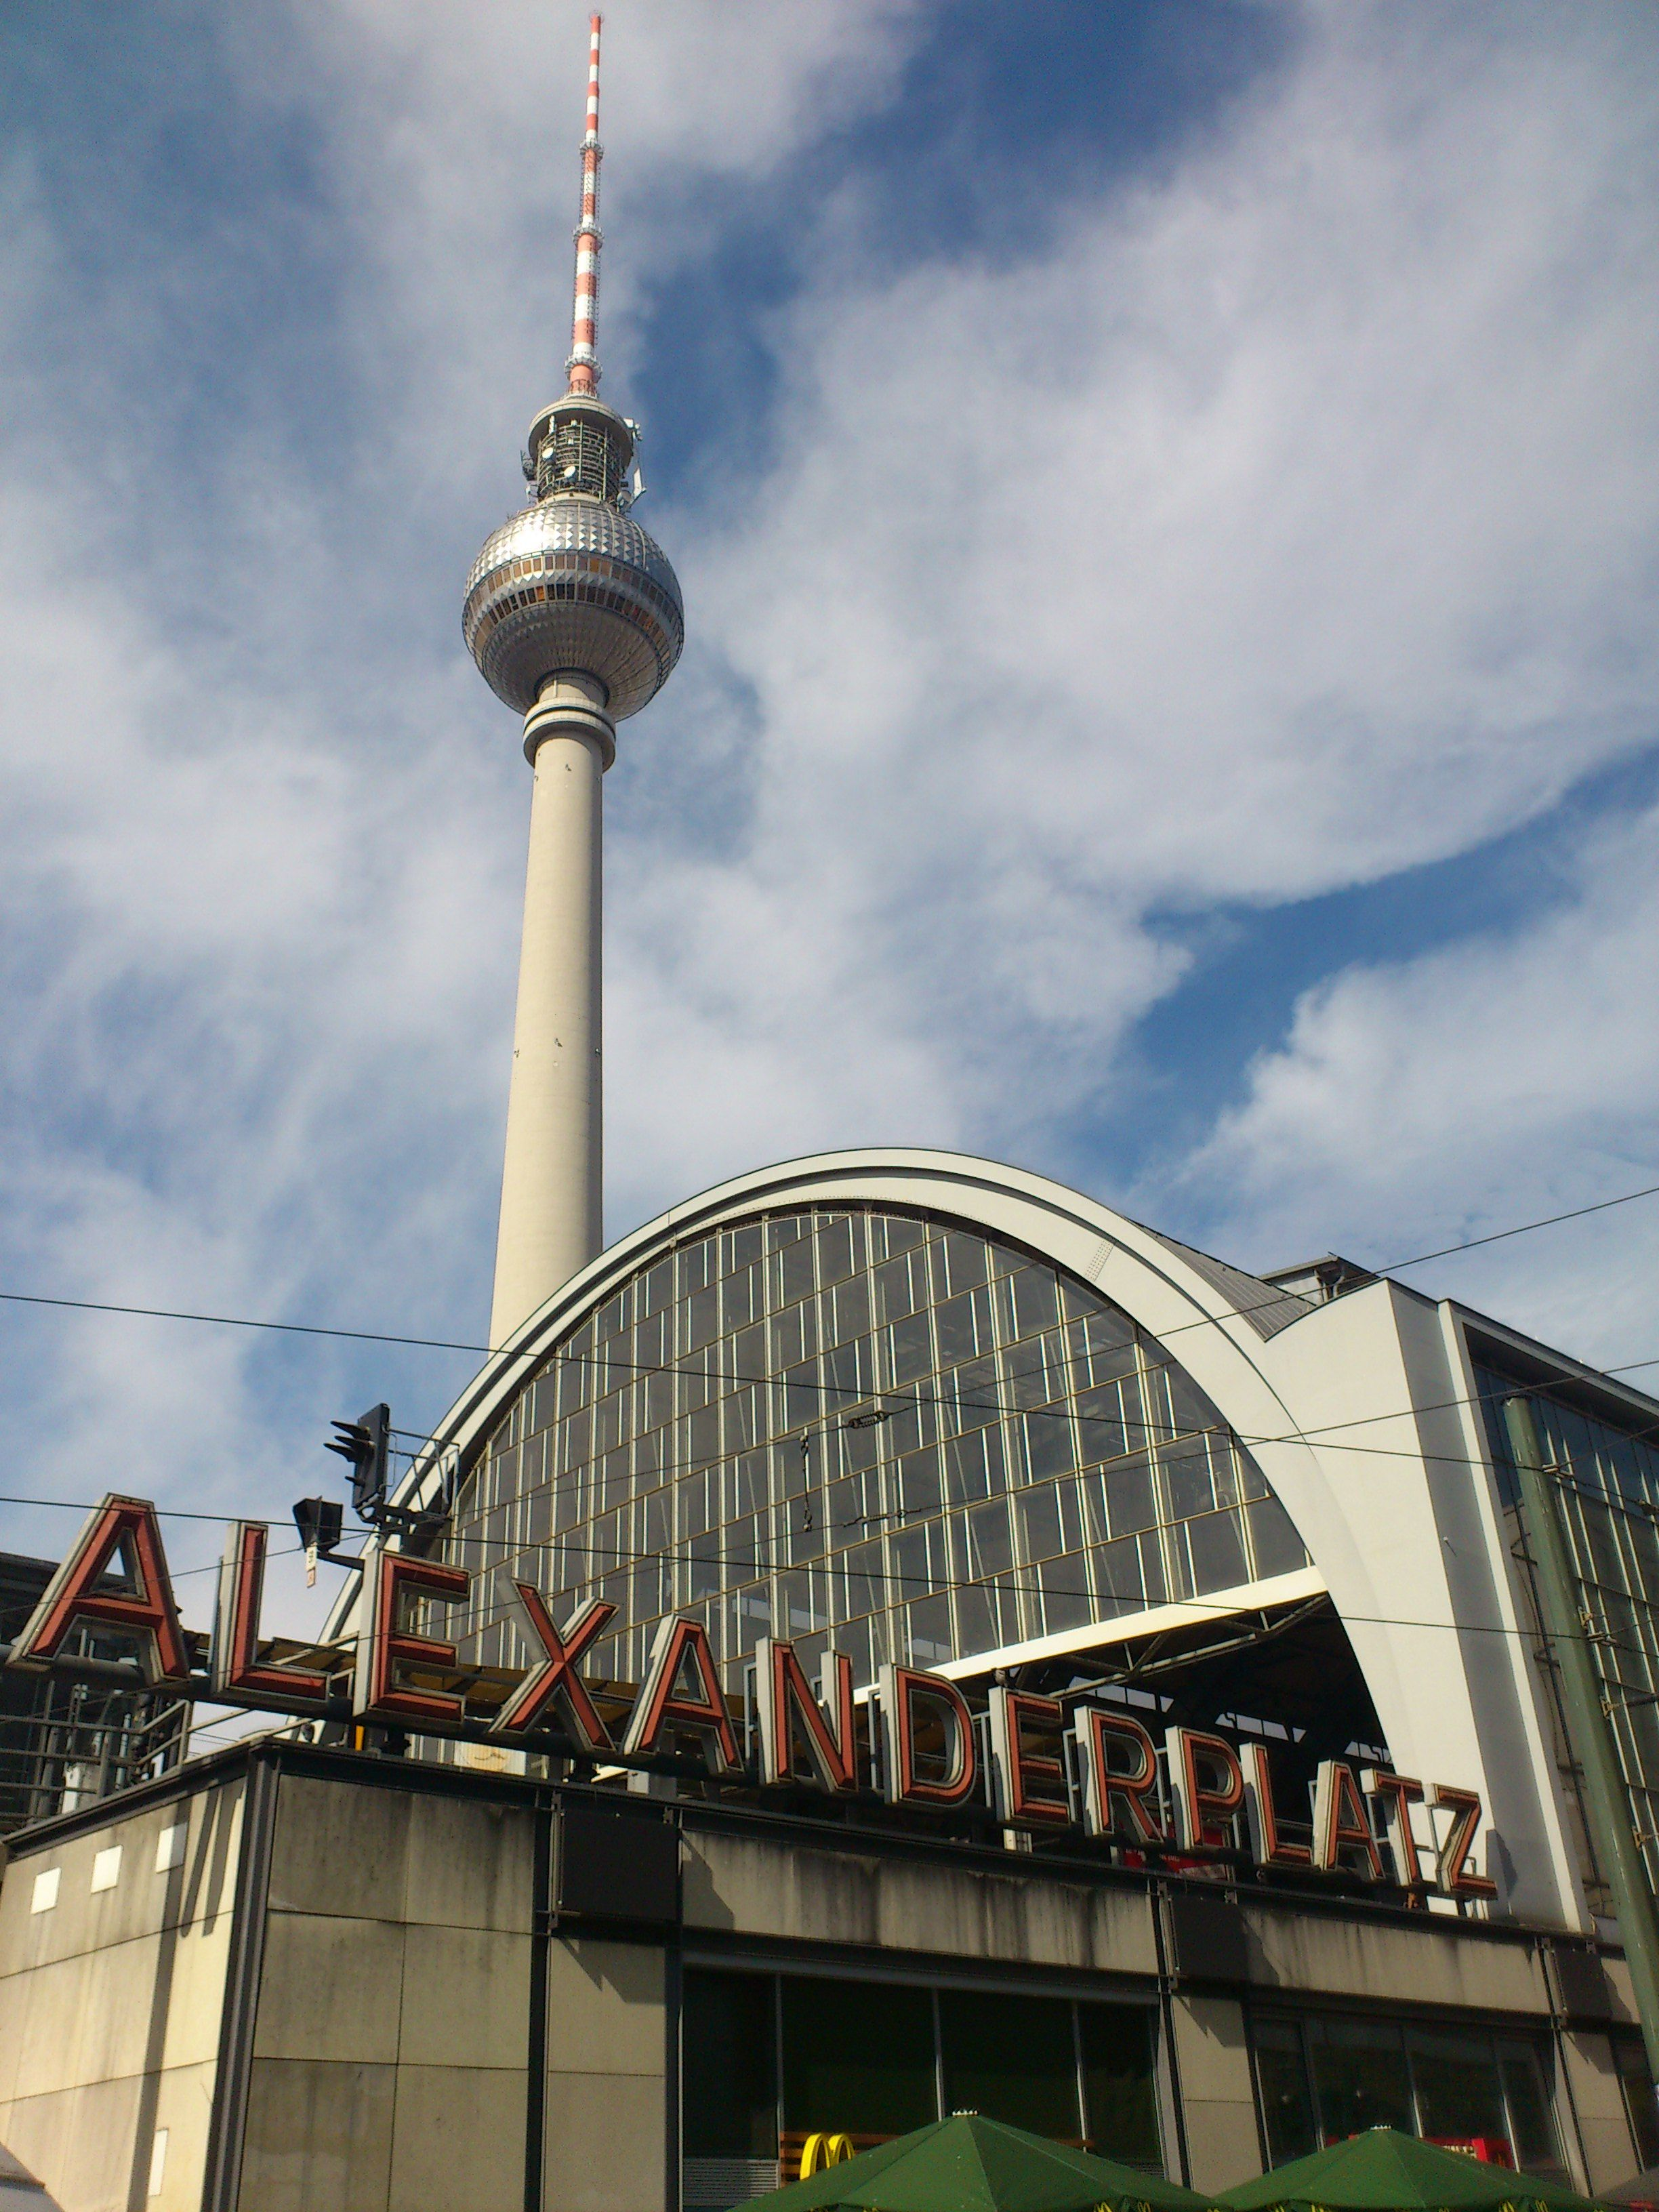 I Stood On The Alexanderplatz One Of The Greatest Sights Of Berlin About The Great Mobility Of People Here In Berlin I Was Ver Germany Favorite Places Berlin